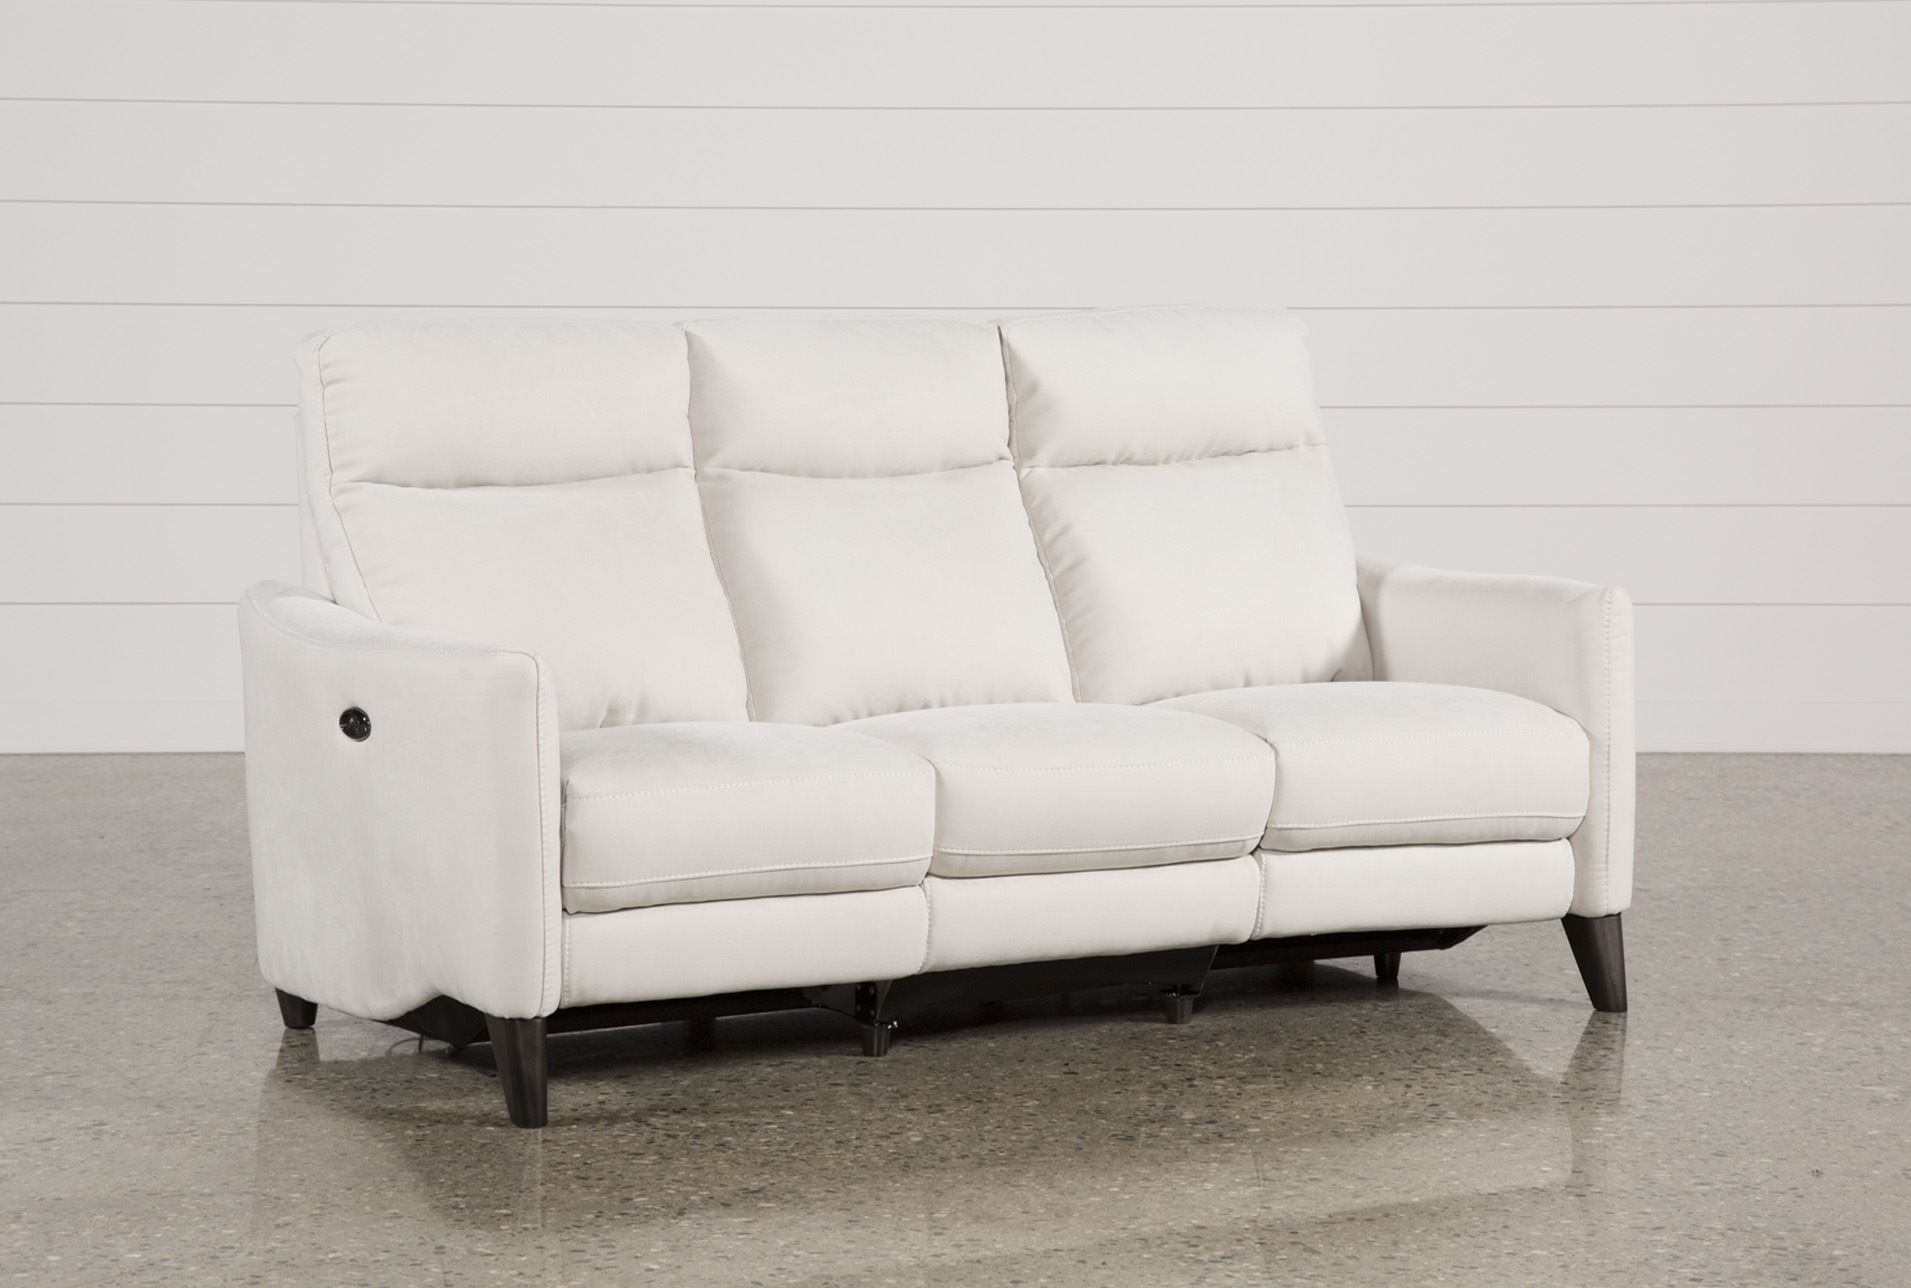 Power Reclining Sofa W/Usb, Melina Bisque, Natural | Pinterest ...